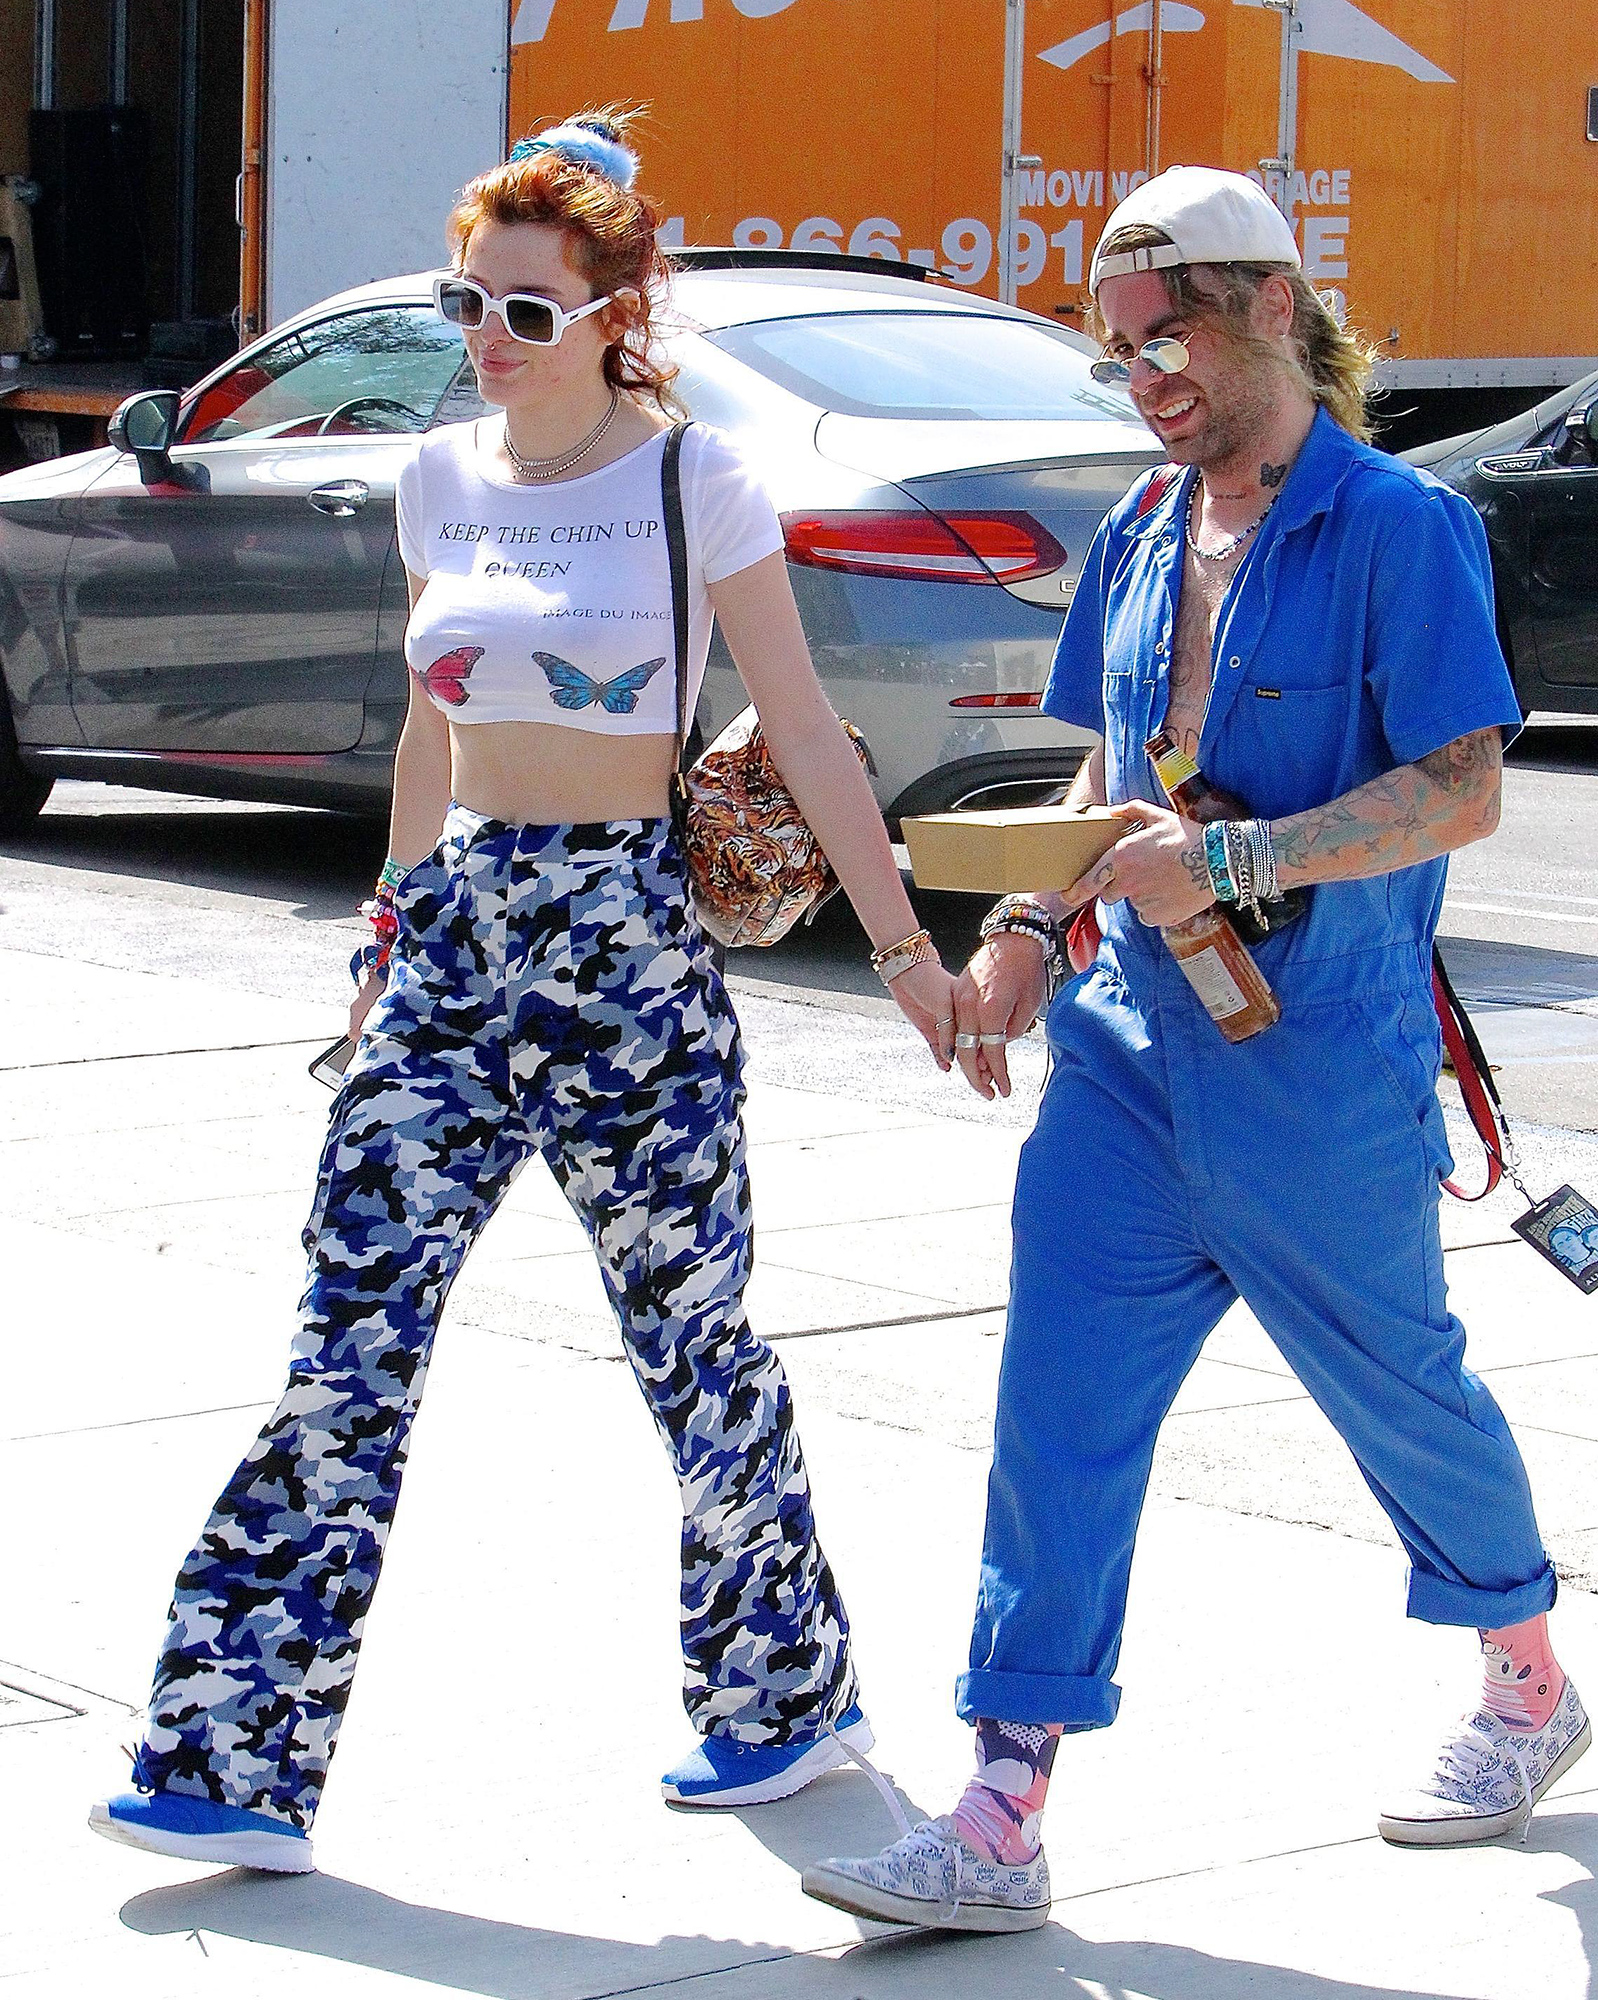 PDA alert! Bella Thorne flaunts her midriff in a colorful look while holding hands with rapper boyfriend Mod Sun